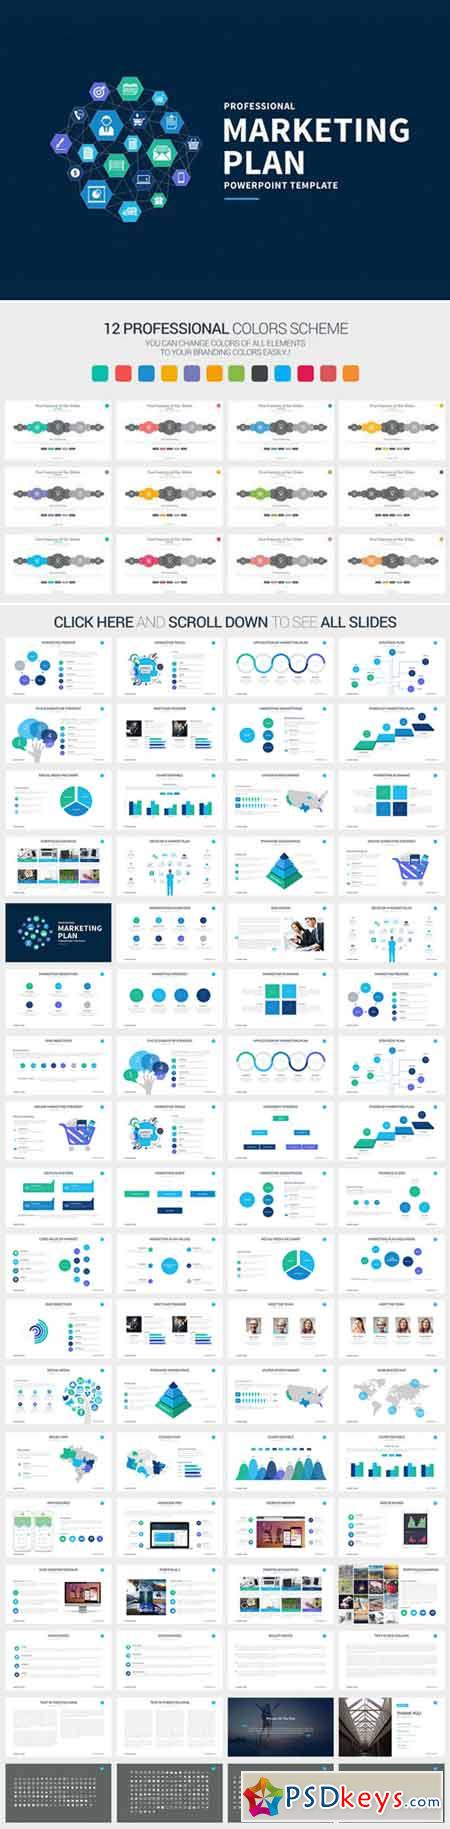 Marketing Plan Powerpoint Template 411609